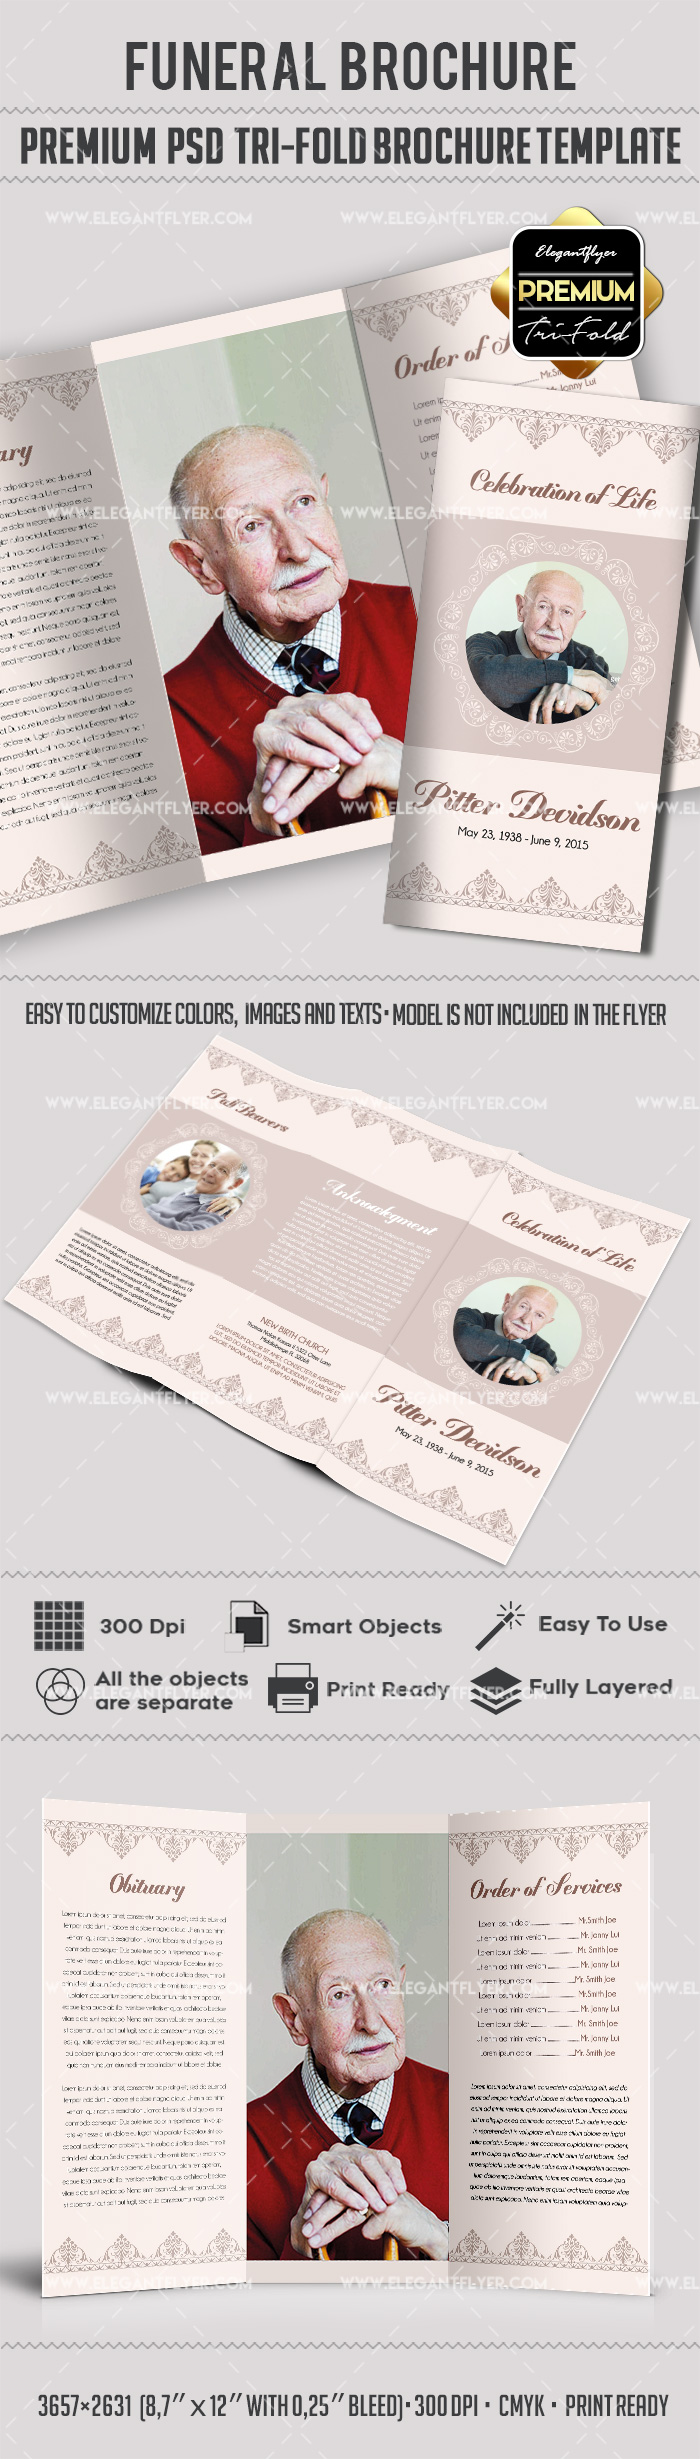 Tri fold funeral service brochure template by elegantflyer for Funeral brochure template